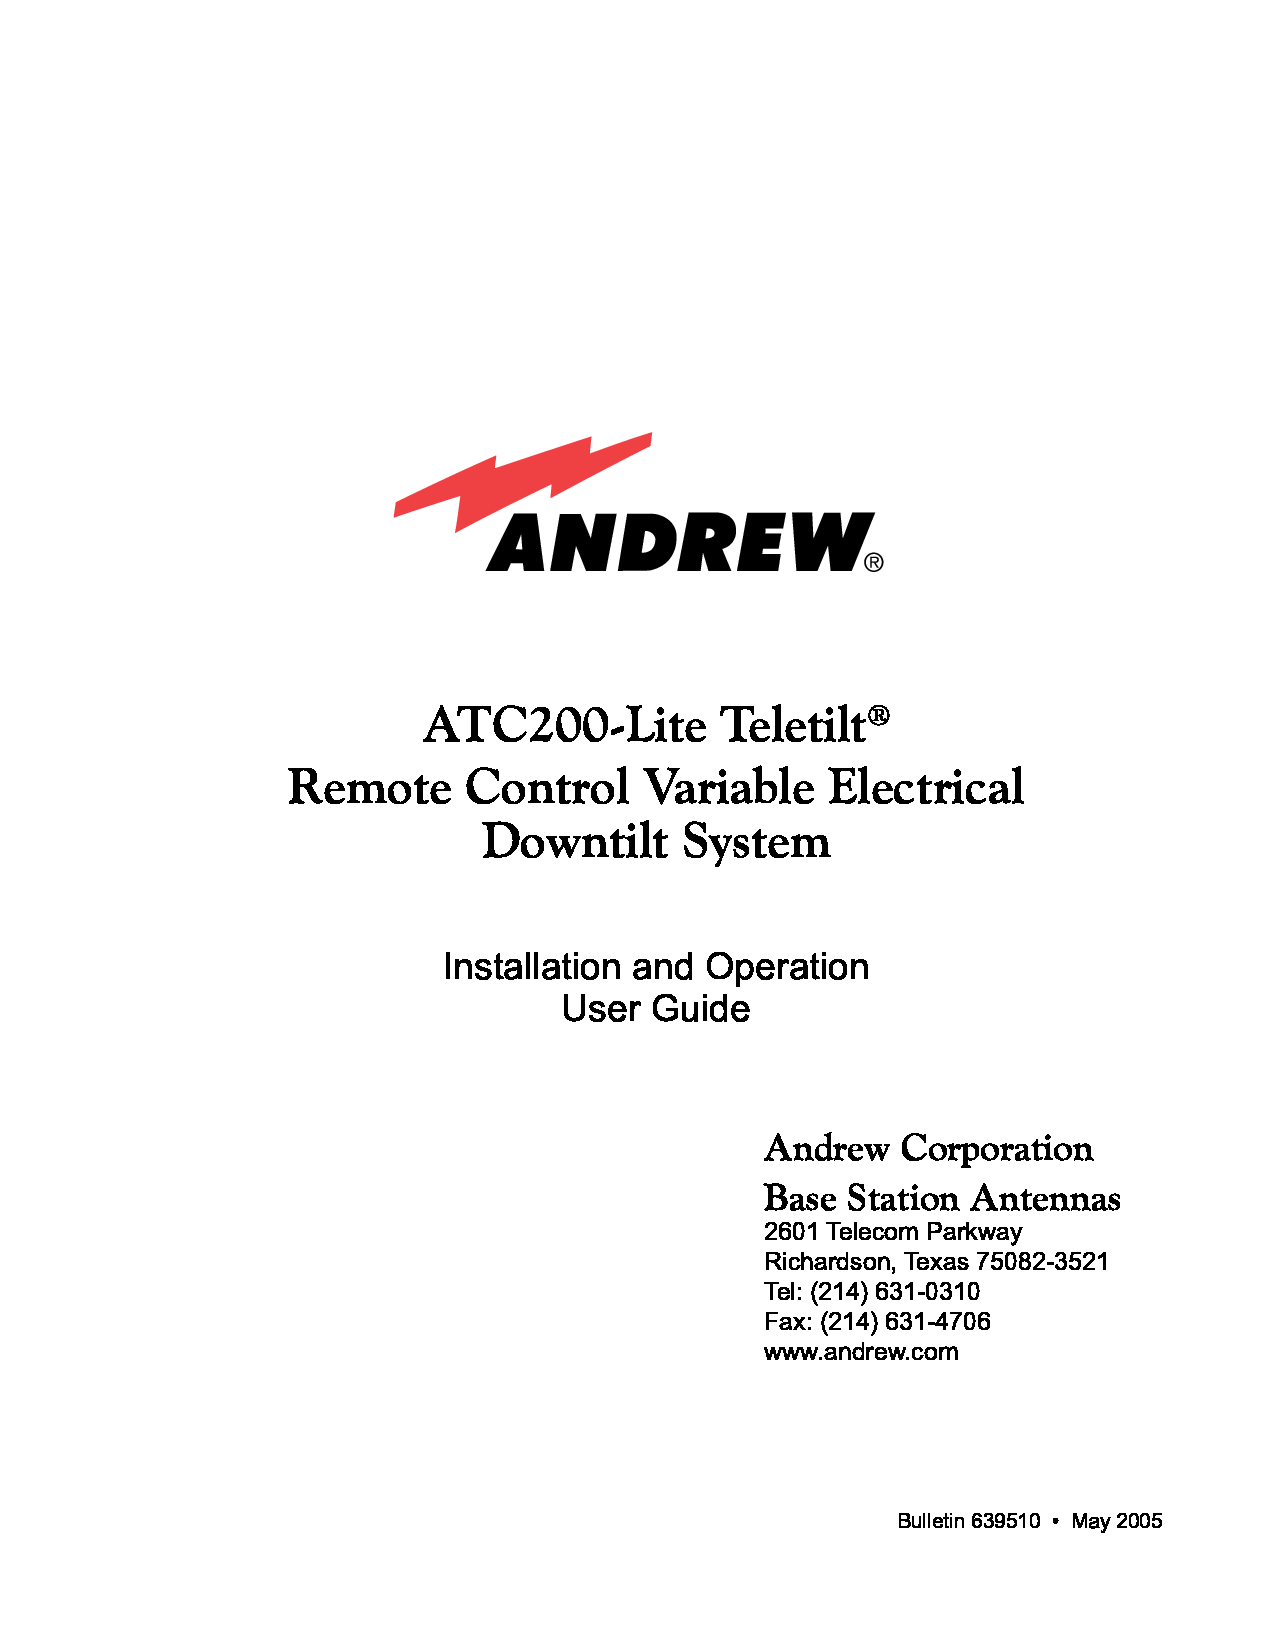 Andrew ATC200-Lite Manual